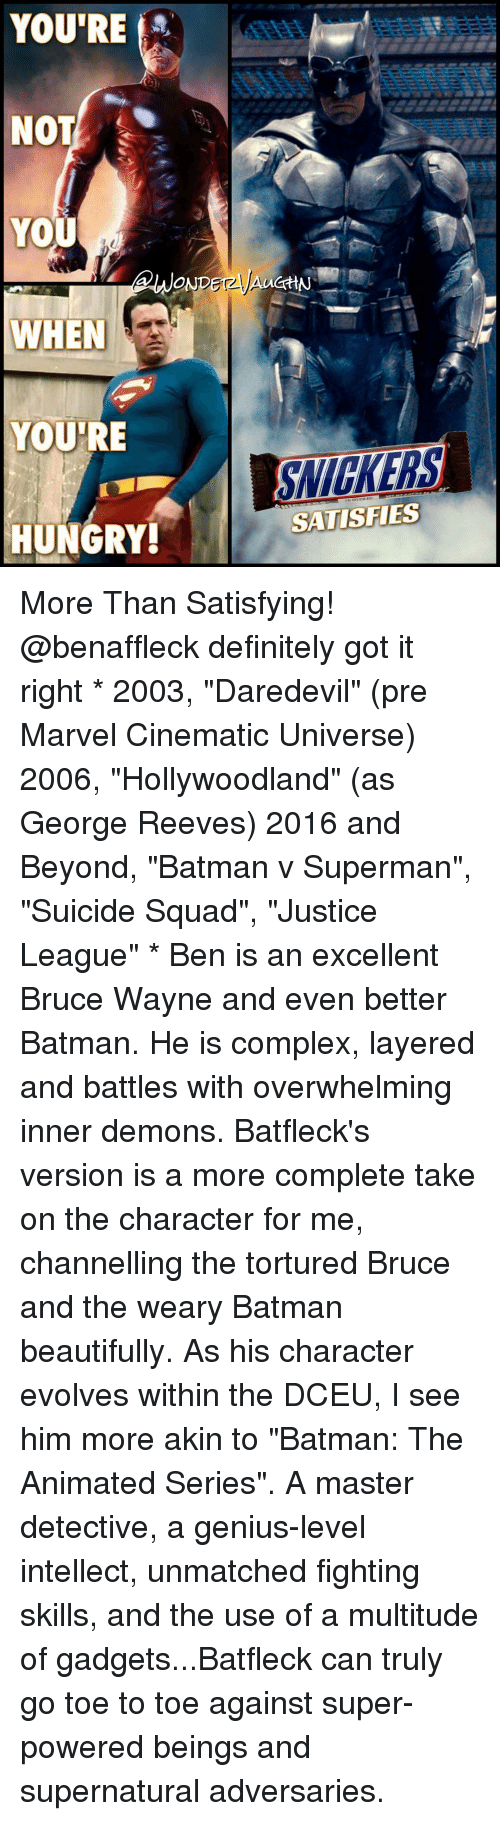 """Reev: YOU'RE  NOT  YOU  WHEN  YOURE  HUNGRY!  GHN  SATISFIES More Than Satisfying! @benaffleck definitely got it right * 2003, """"Daredevil"""" (pre Marvel Cinematic Universe) 2006, """"Hollywoodland"""" (as George Reeves) 2016 and Beyond, """"Batman v Superman"""", """"Suicide Squad"""", """"Justice League"""" * Ben is an excellent Bruce Wayne and even better Batman. He is complex, layered and battles with overwhelming inner demons. Batfleck's version is a more complete take on the character for me, channelling the tortured Bruce and the weary Batman beautifully. As his character evolves within the DCEU, I see him more akin to """"Batman: The Animated Series"""". A master detective, a genius-level intellect, unmatched fighting skills, and the use of a multitude of gadgets...Batfleck can truly go toe to toe against super-powered beings and supernatural adversaries."""